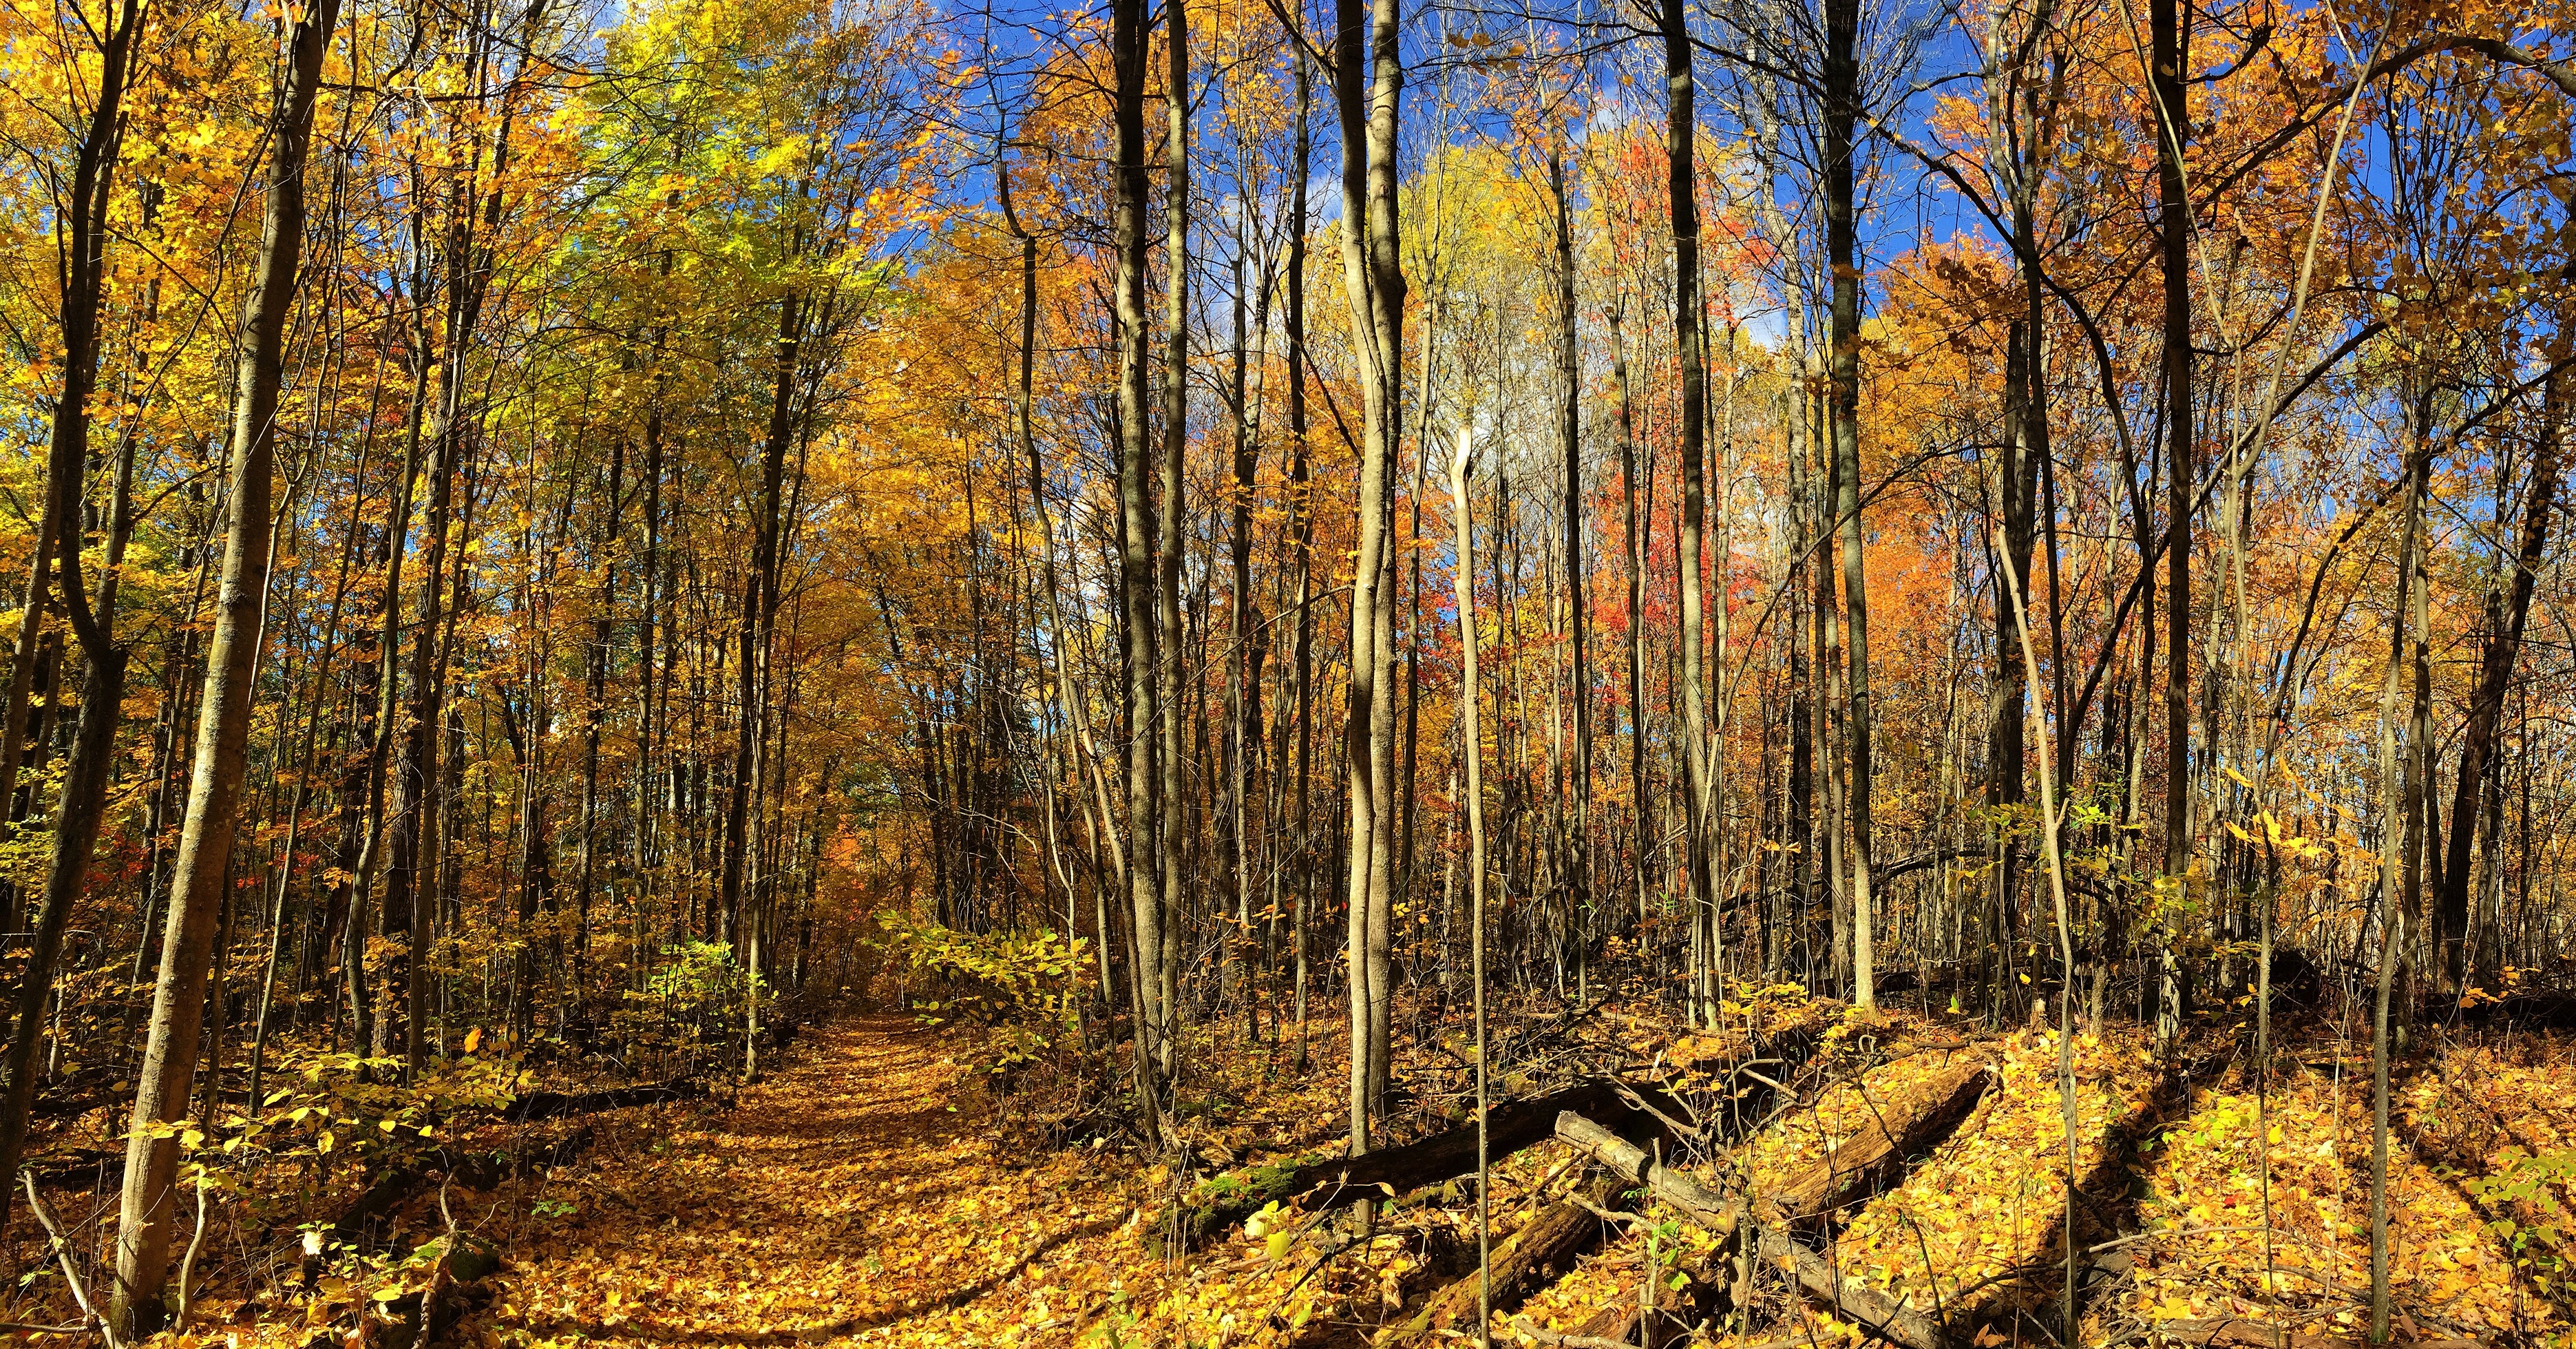 A trail through the woods covered with yellow fall leaves